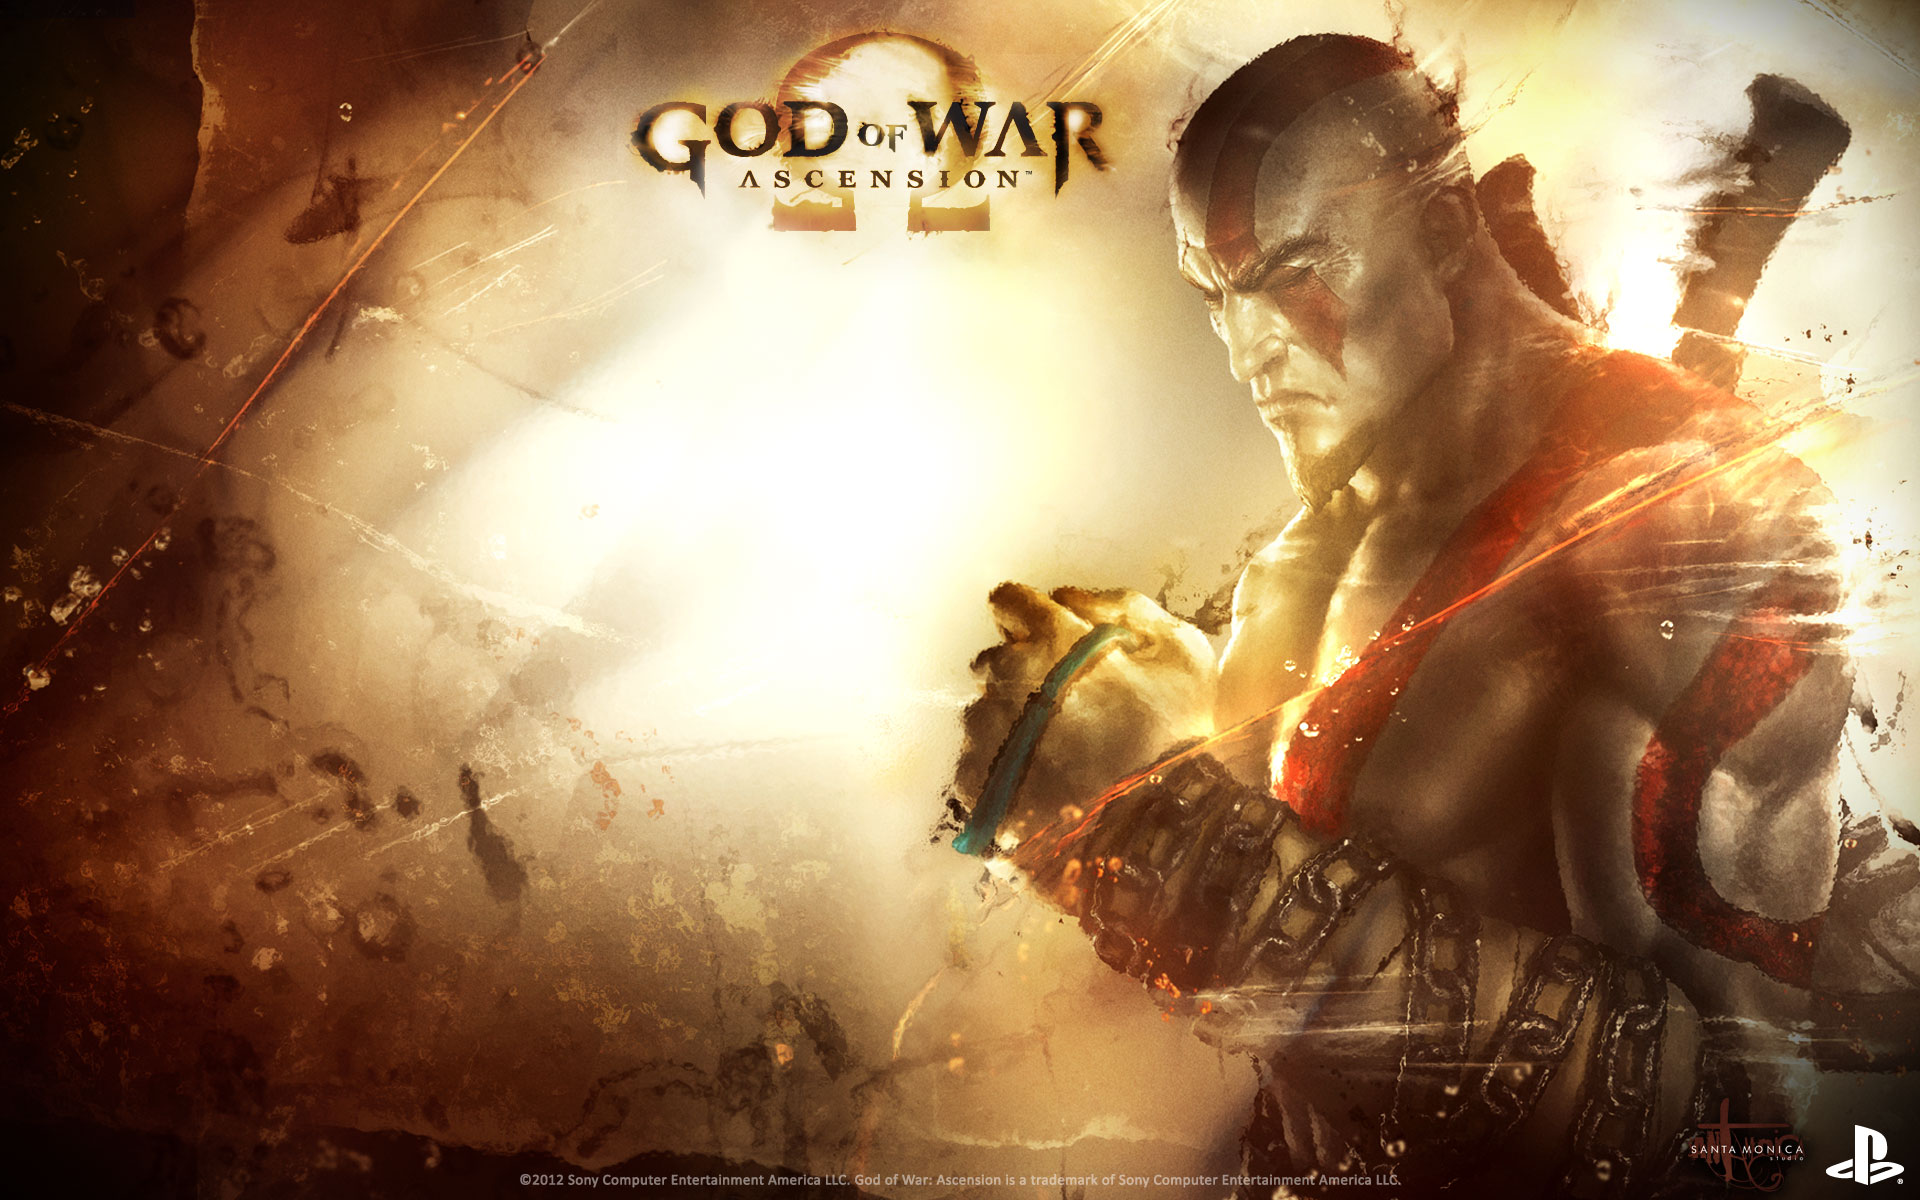 39 god of war ascension hd wallpapers background images 39 god of war ascension hd wallpapers background images wallpaper abyss voltagebd